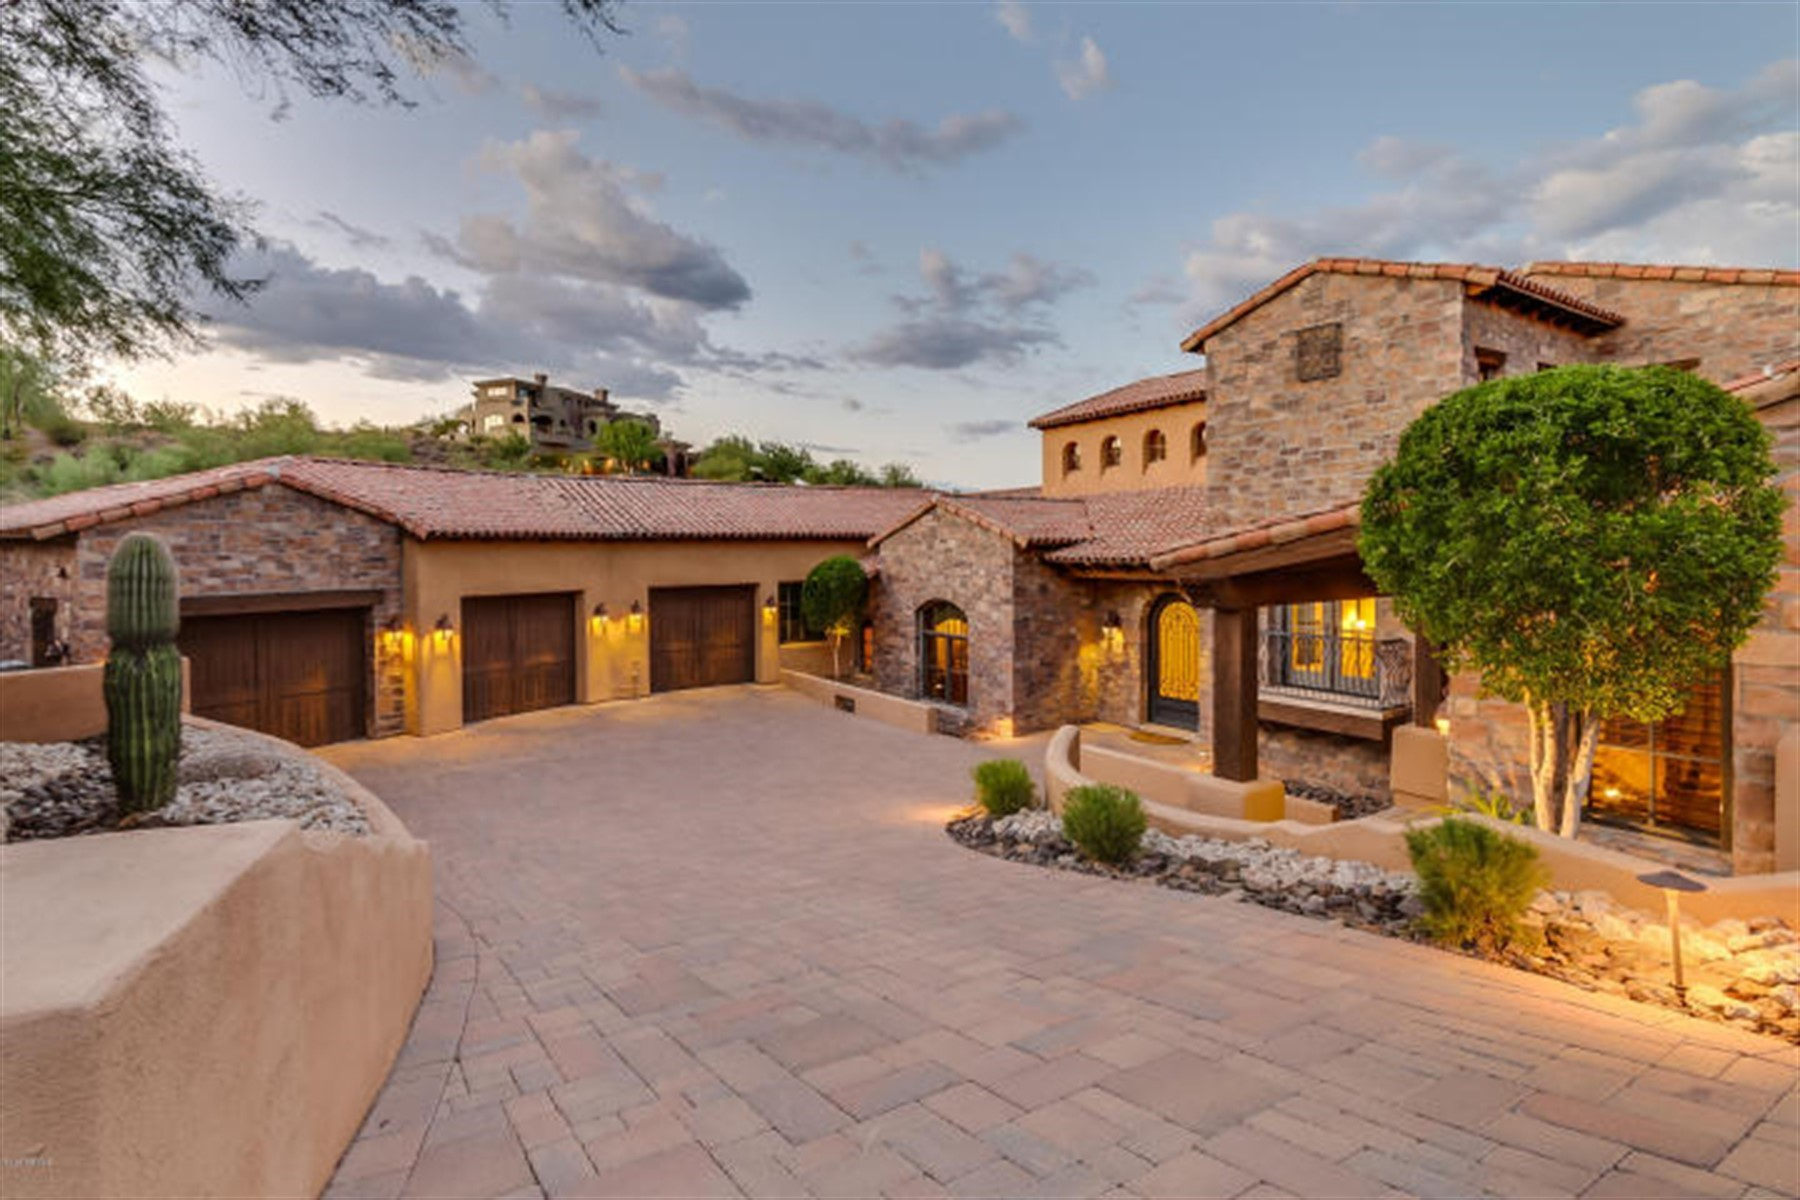 Single Family Homes for Sale at Golf Course Frontage 9205 N Fireridge Trl Fountain Hills, Arizona 85268 United States